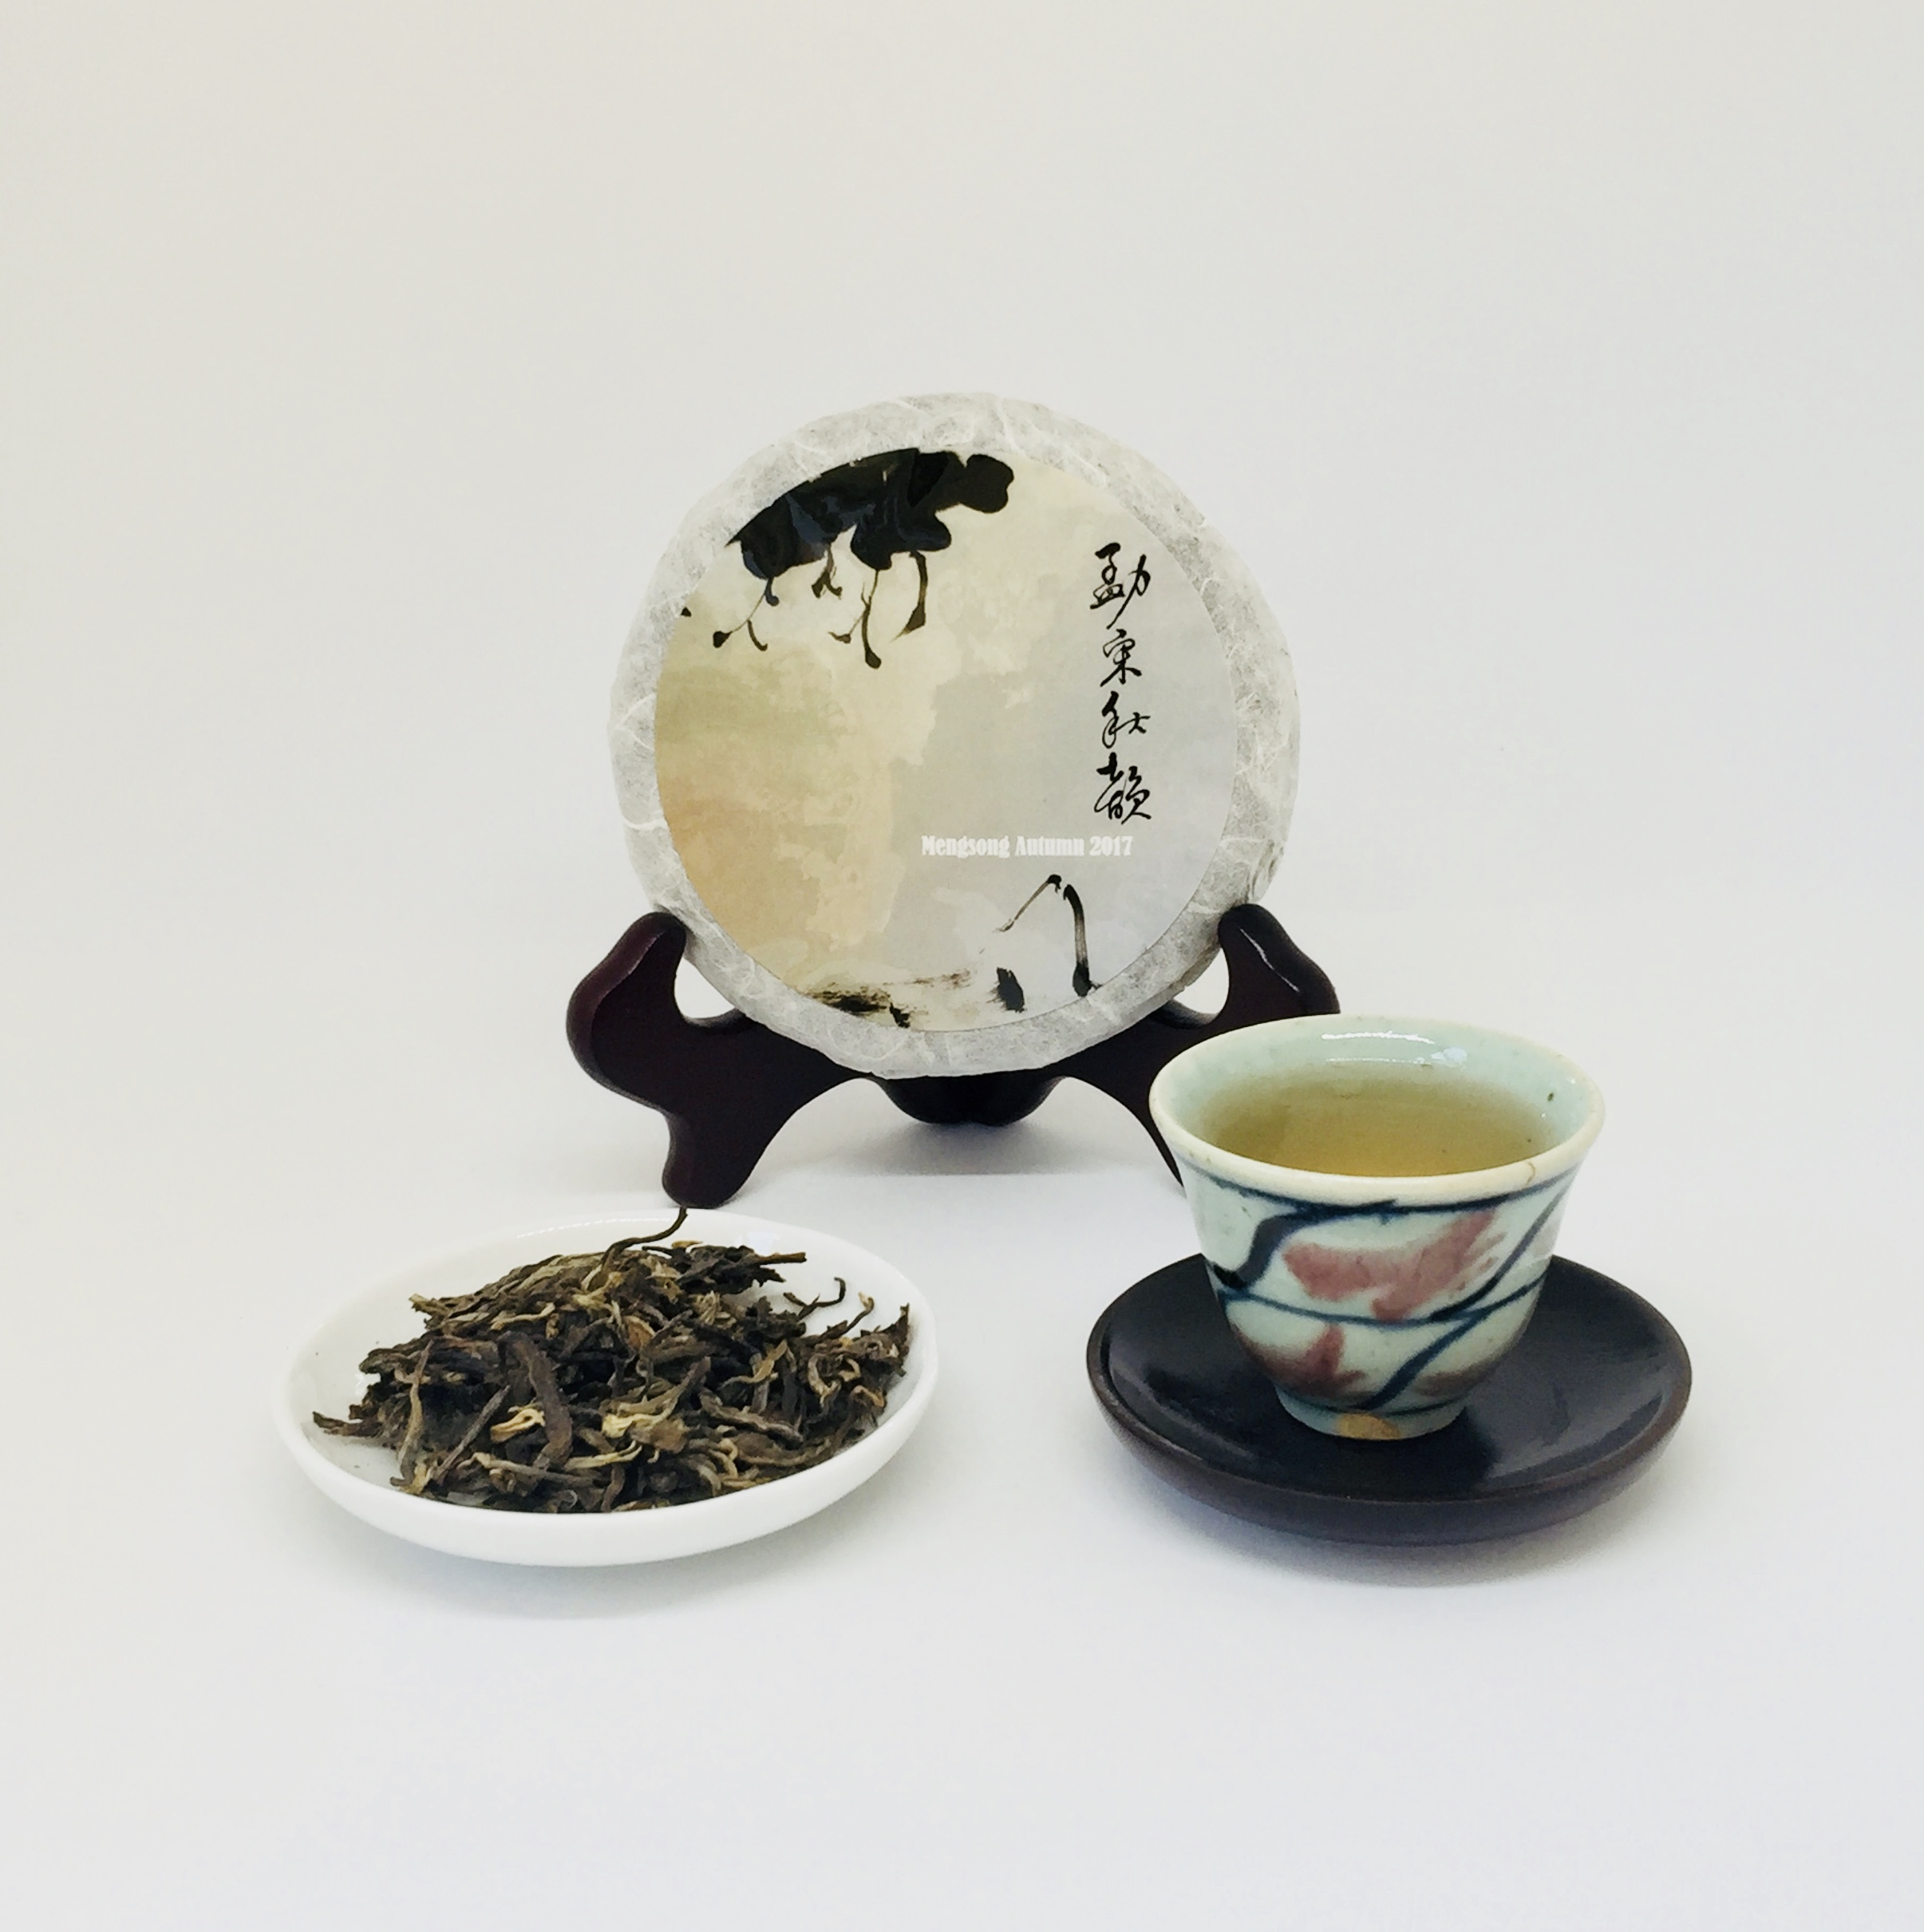 Mengsong Autumn Raw Pu-erh Tea